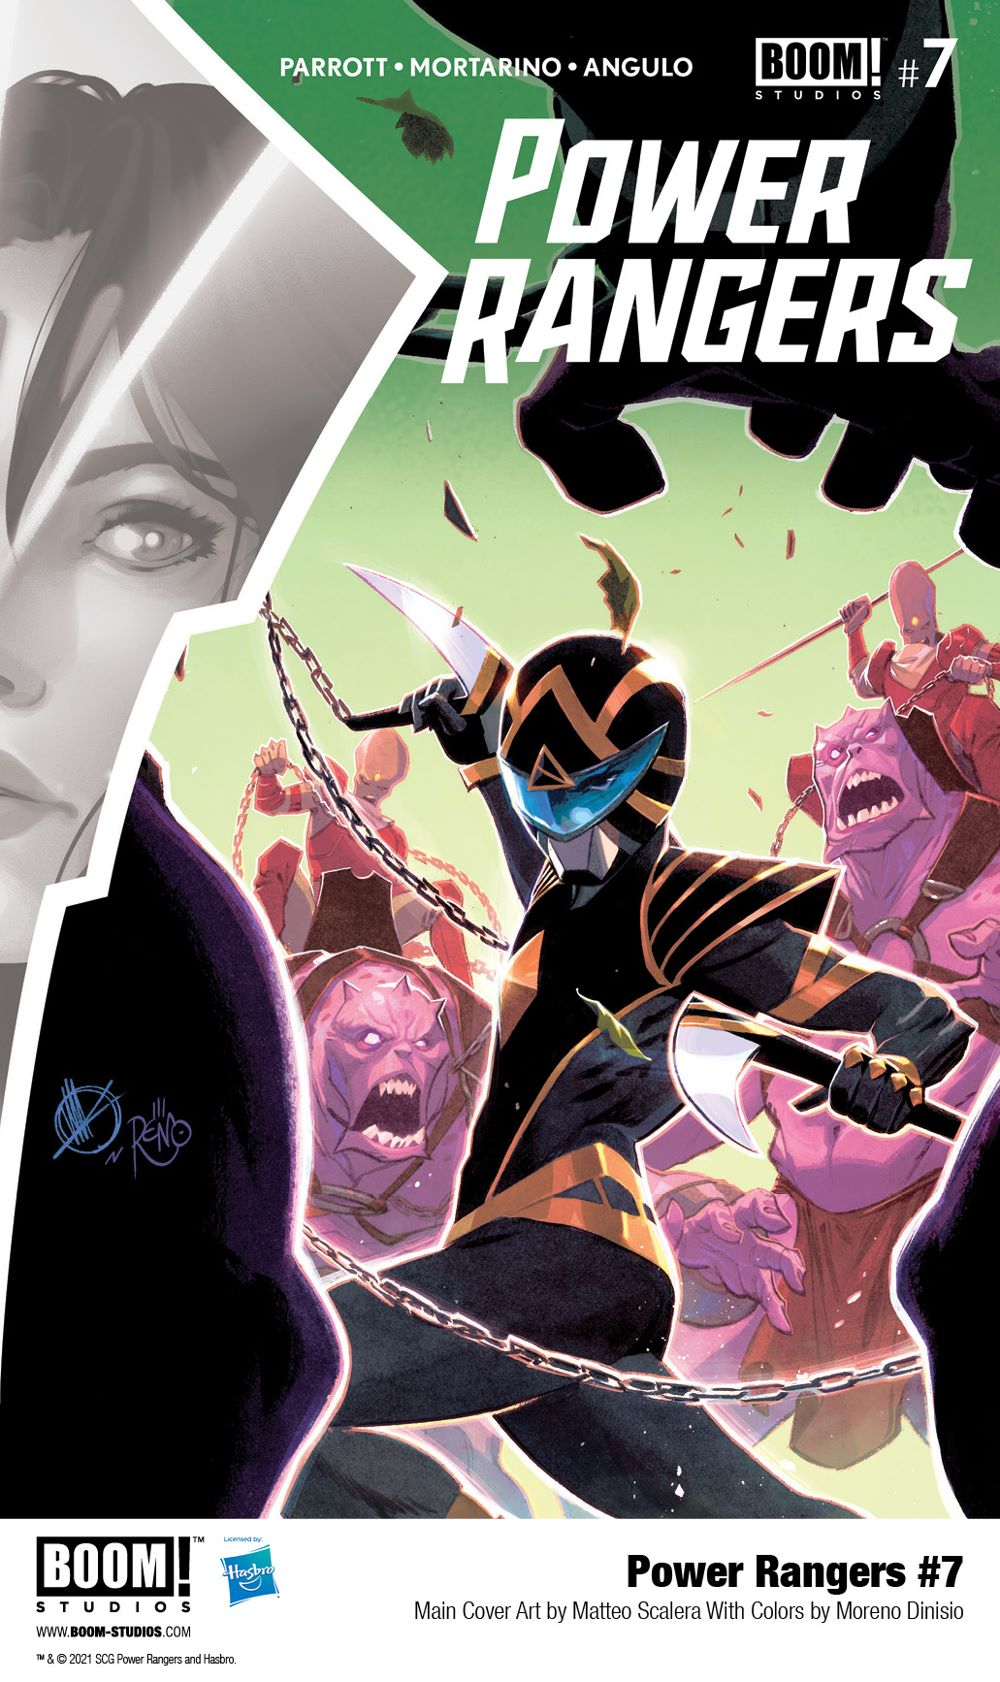 PowerRangers_007_Cover_A_Main_PROMO First Look at POWER RANGERS #7 by BOOM! Studios